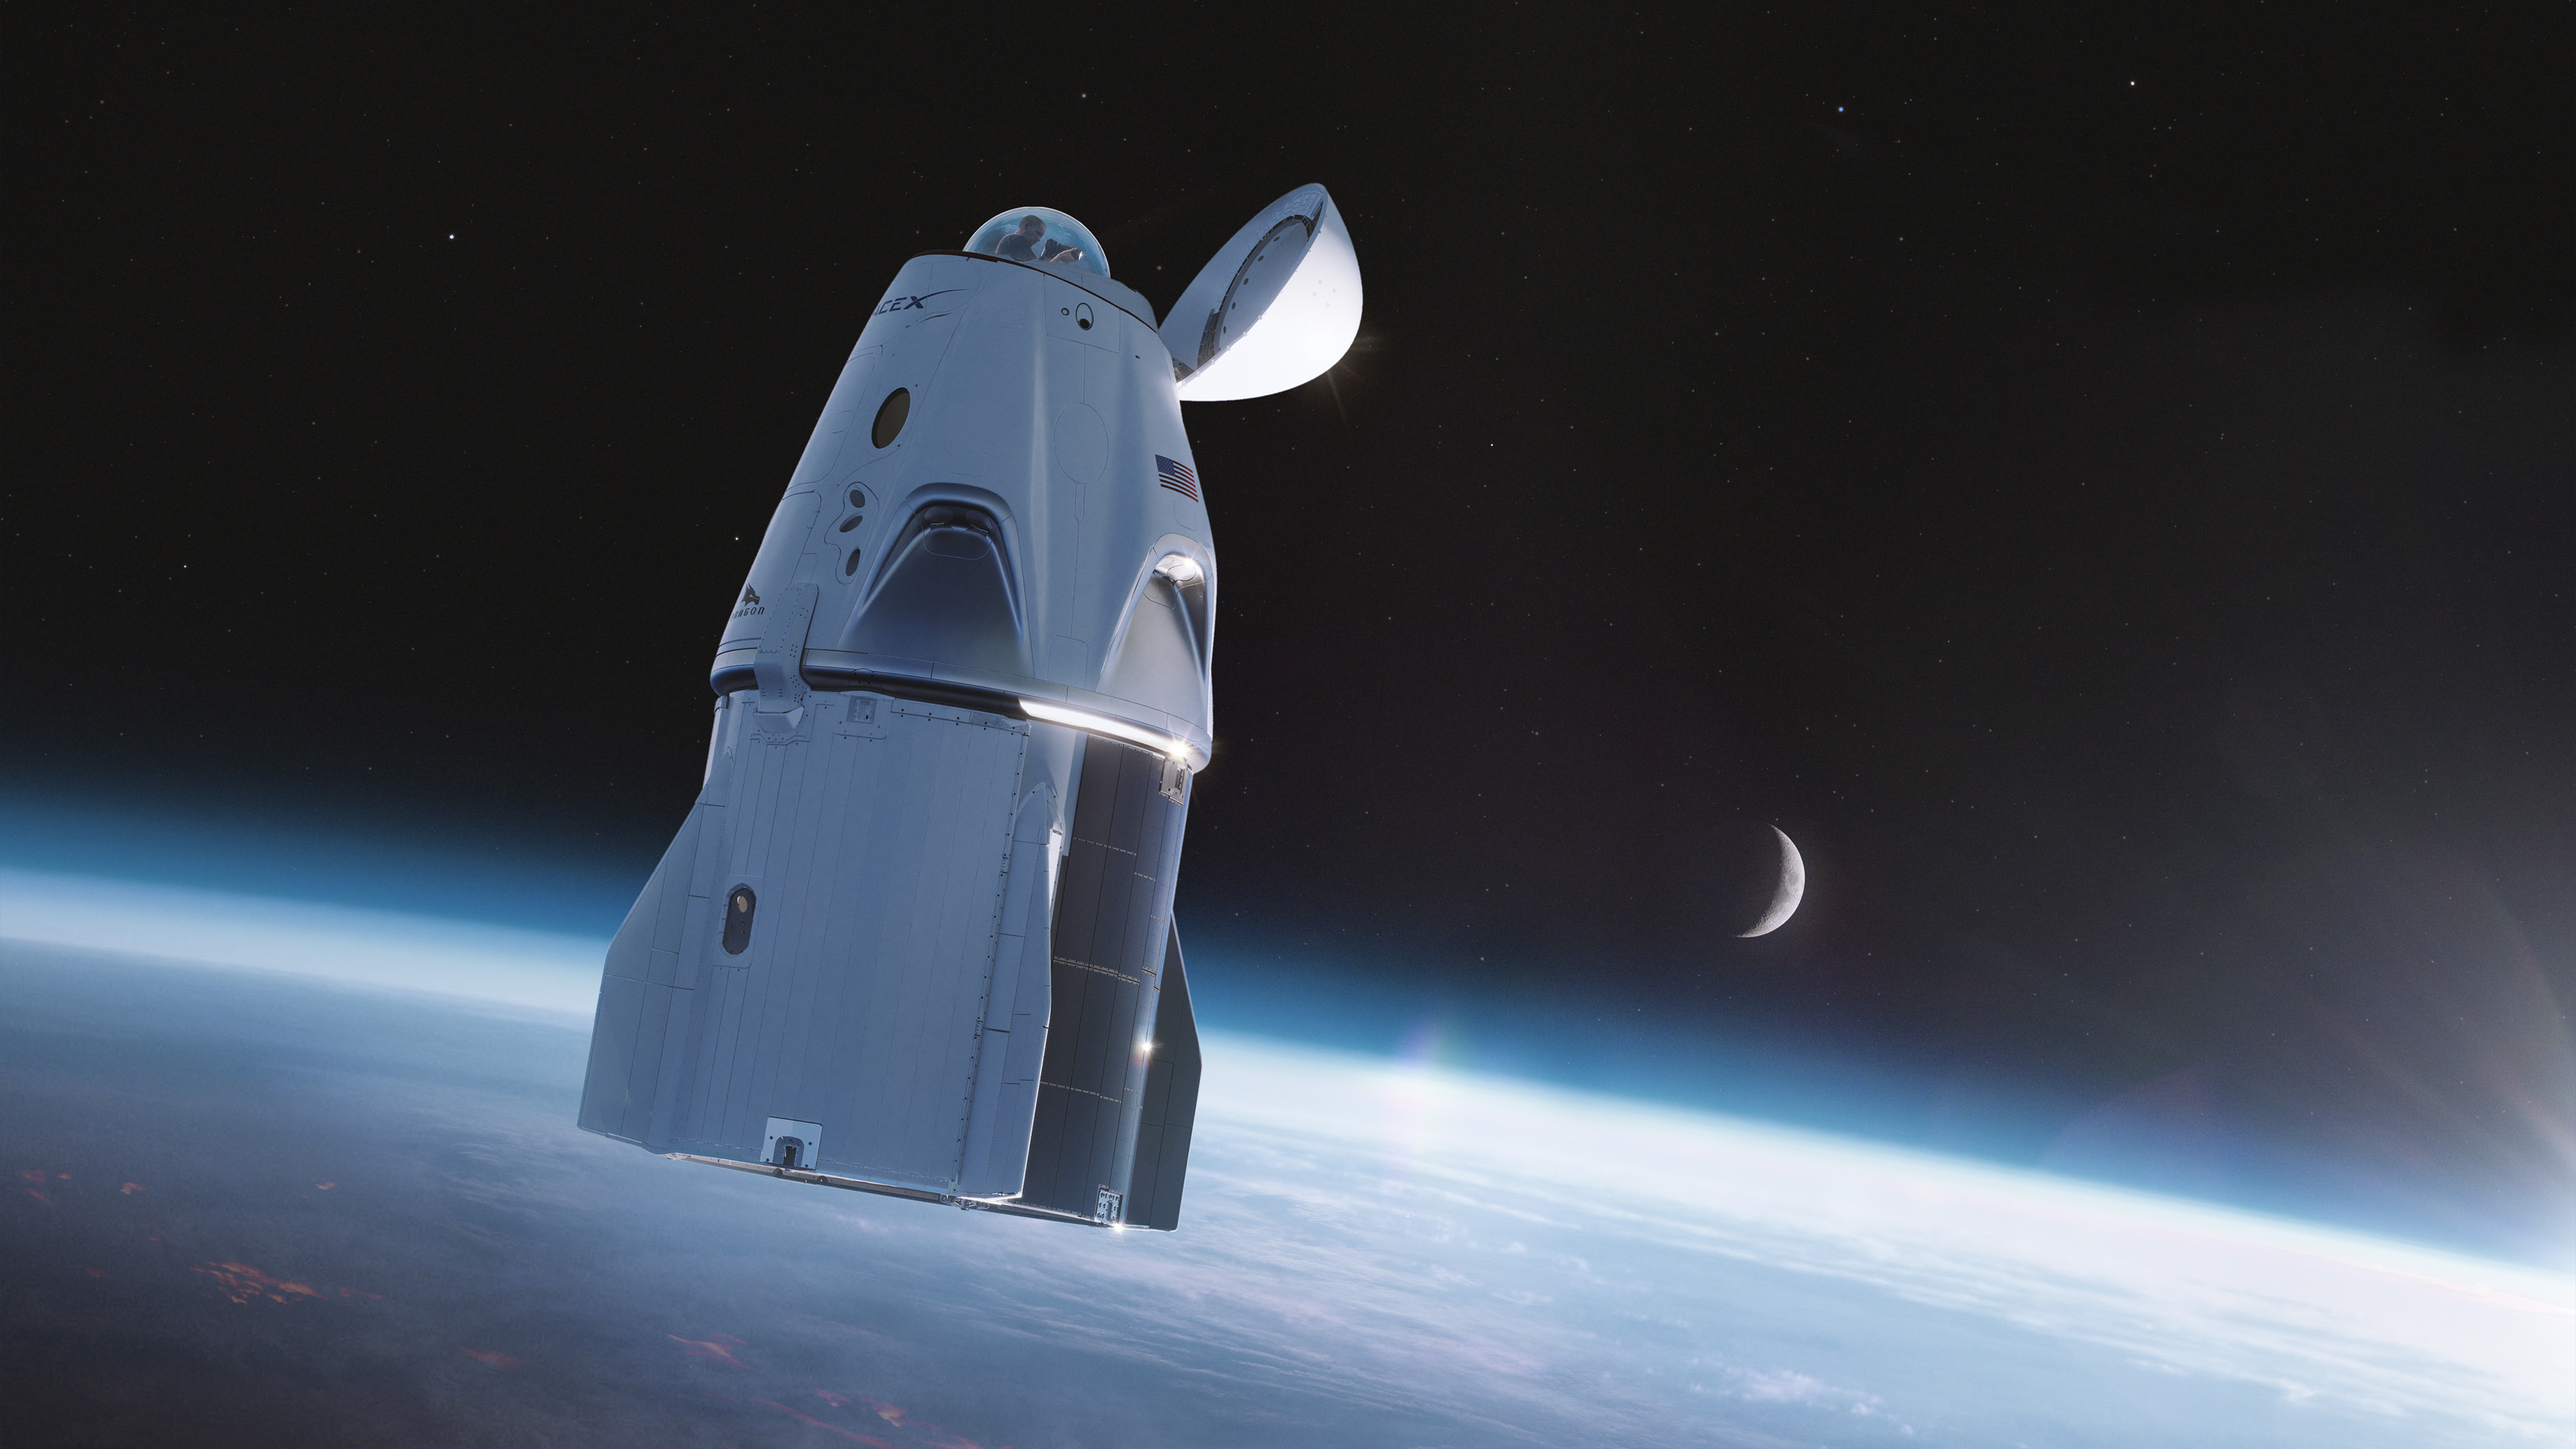 SpaceX Inspiration4 all-civilian mission: How to watch the launch next week